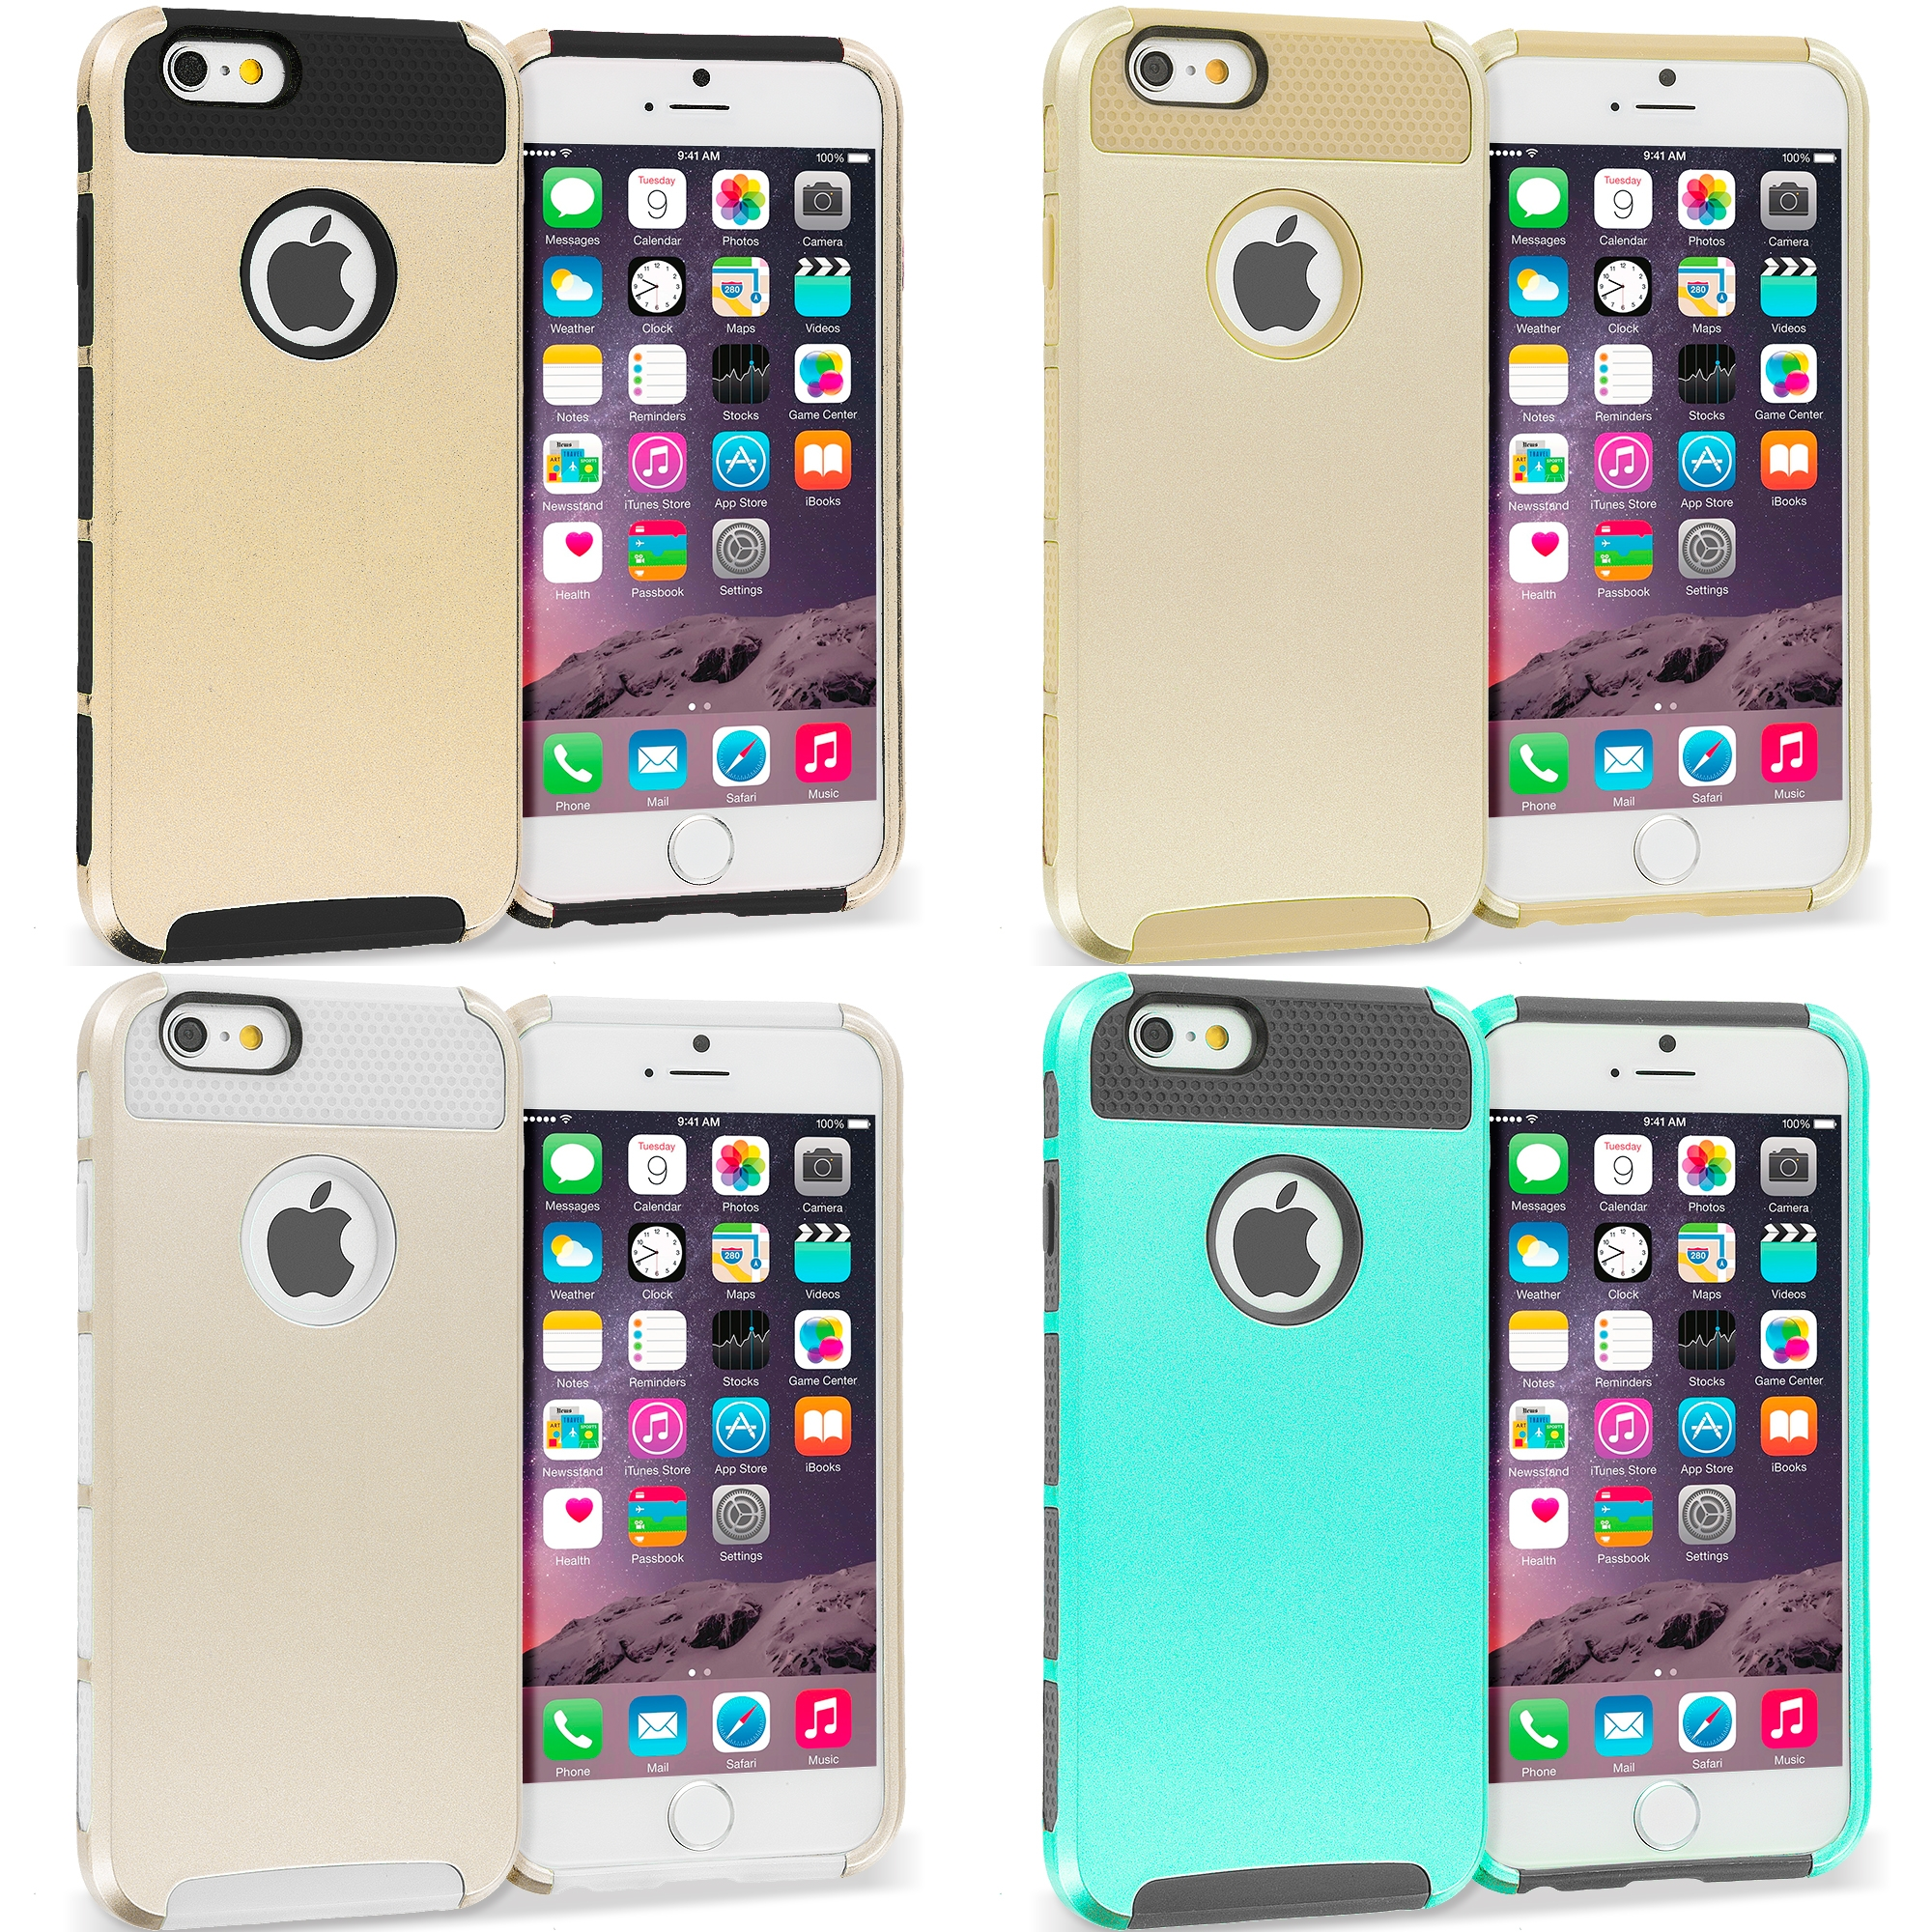 Apple iPhone 6 Plus 6S Plus (5.5) 4 in 1 Combo Bundle Pack - Hybrid Hard TPU Honeycomb Rugged Case Cover